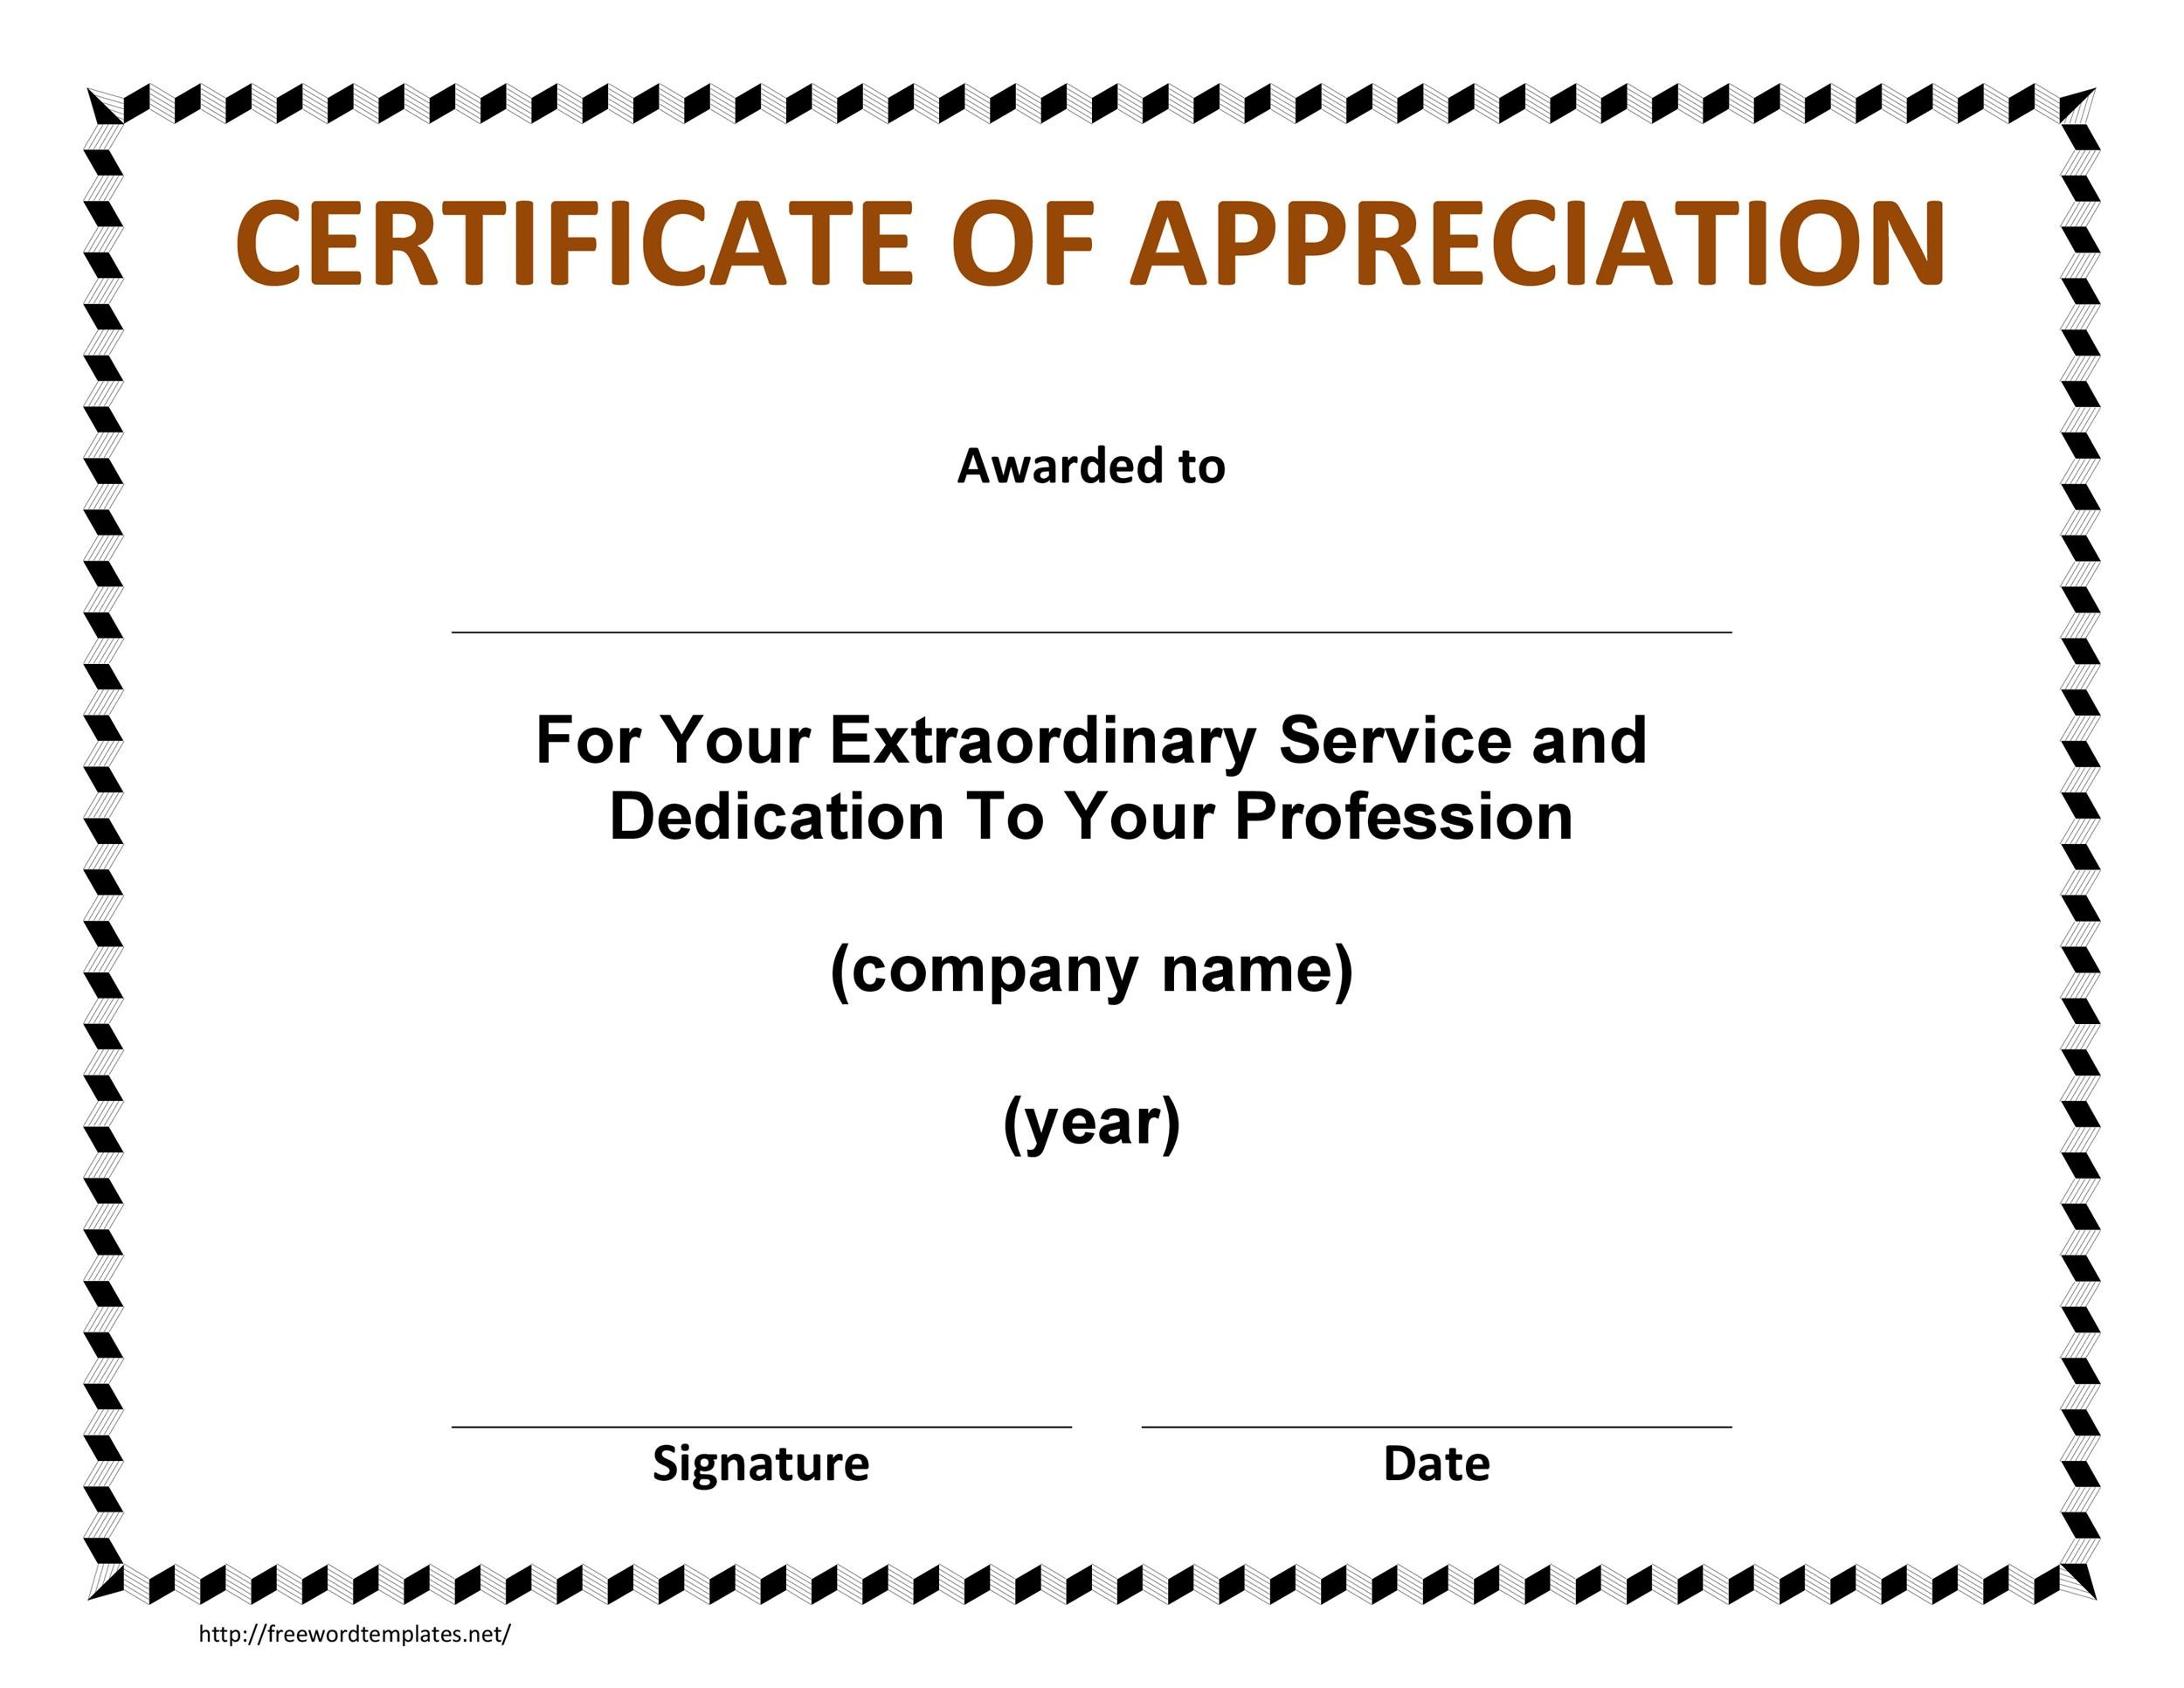 Printable Certificate Of Appreciation 04